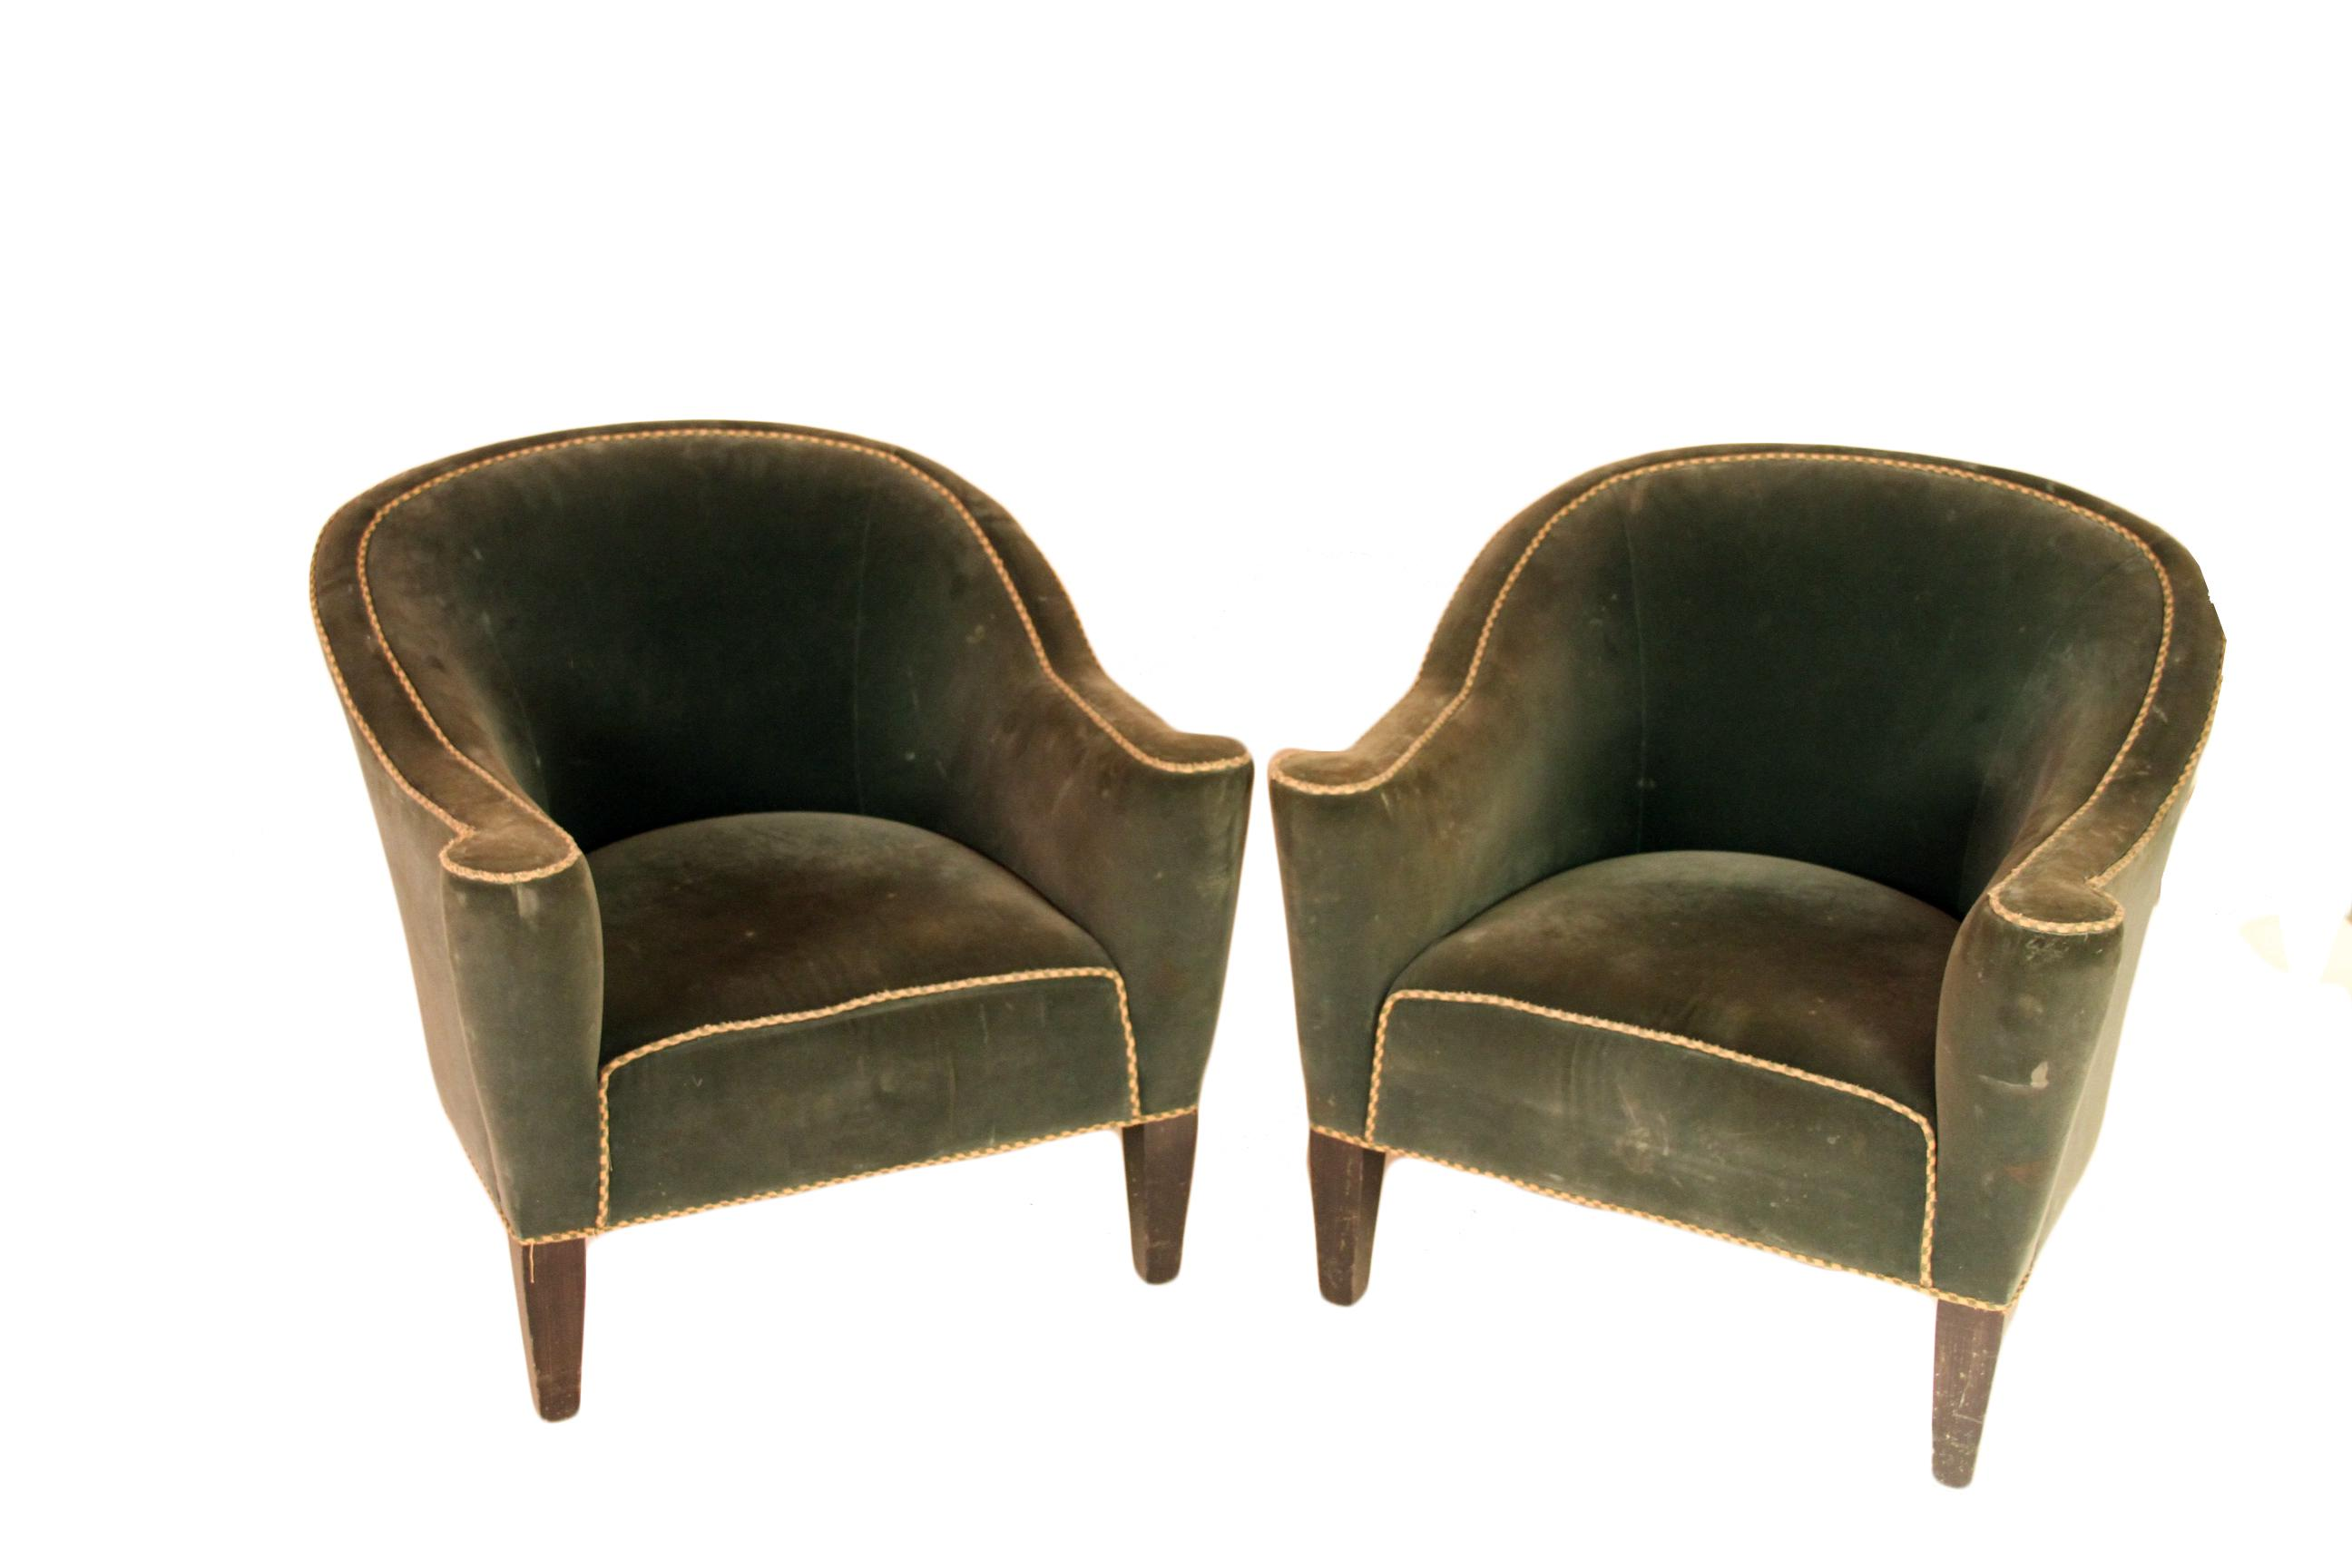 High Quality Art Deco Round Back Club Chairs   A Pair   Image 6 Of 6